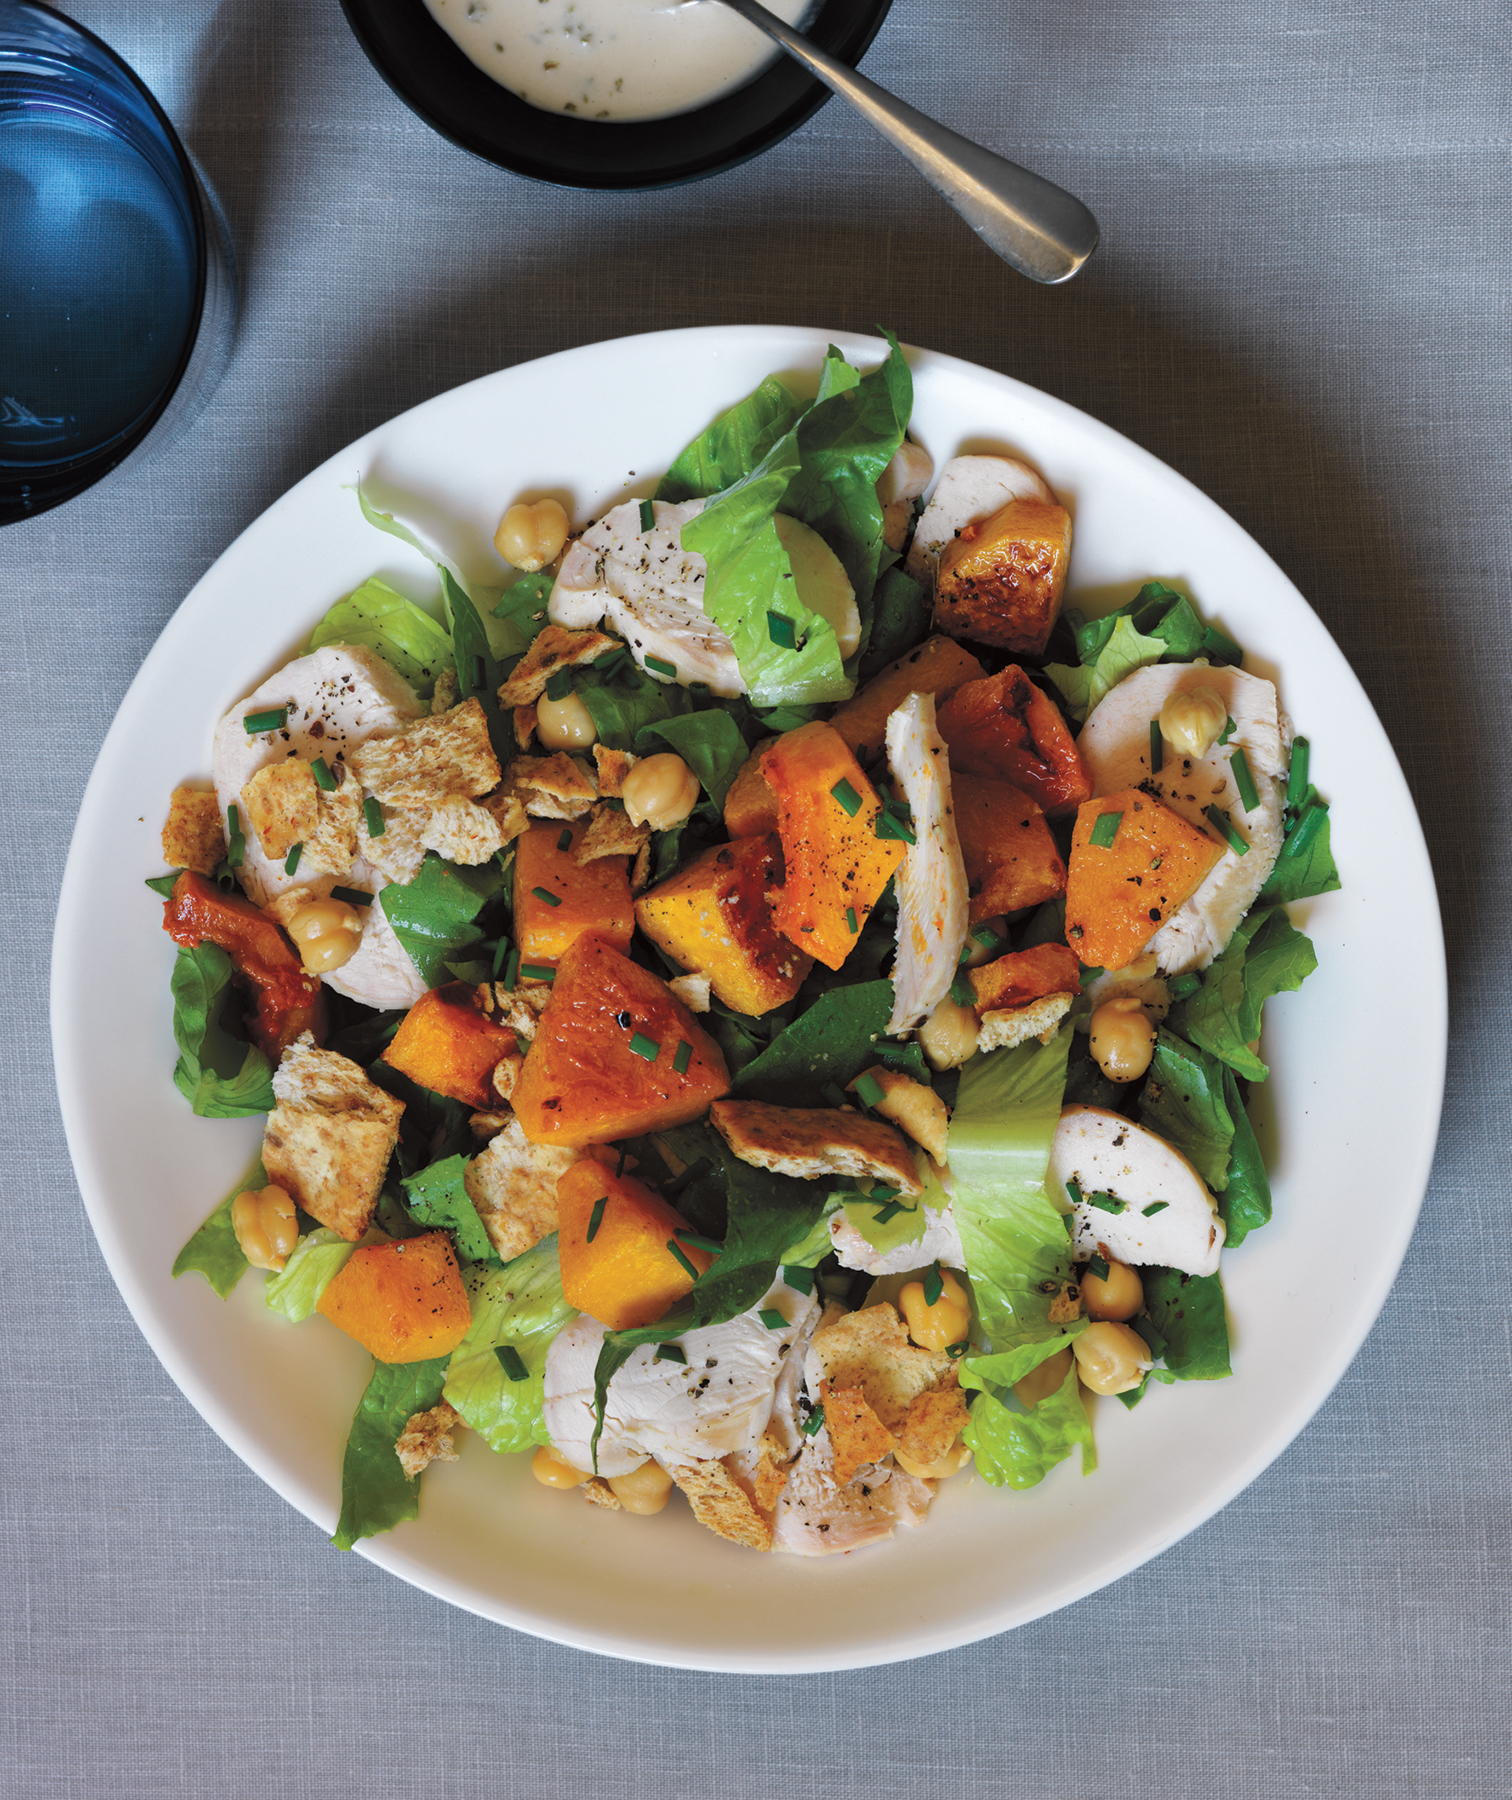 Chicken, Squash, and Chickpea Salad With Tahini Dressing